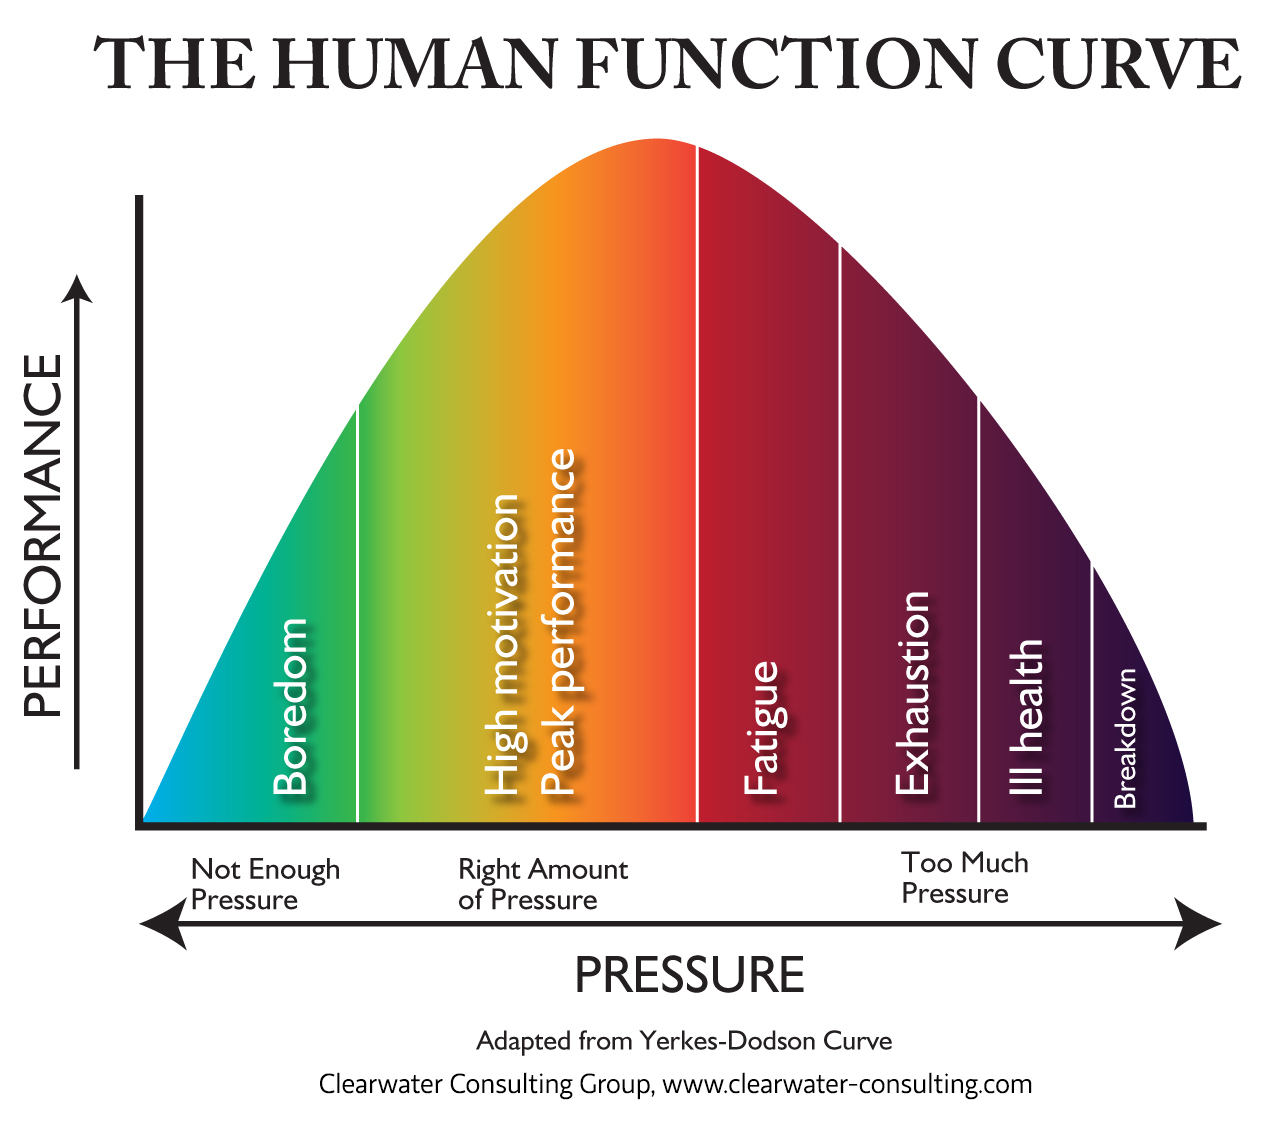 Human Function Curve 2018